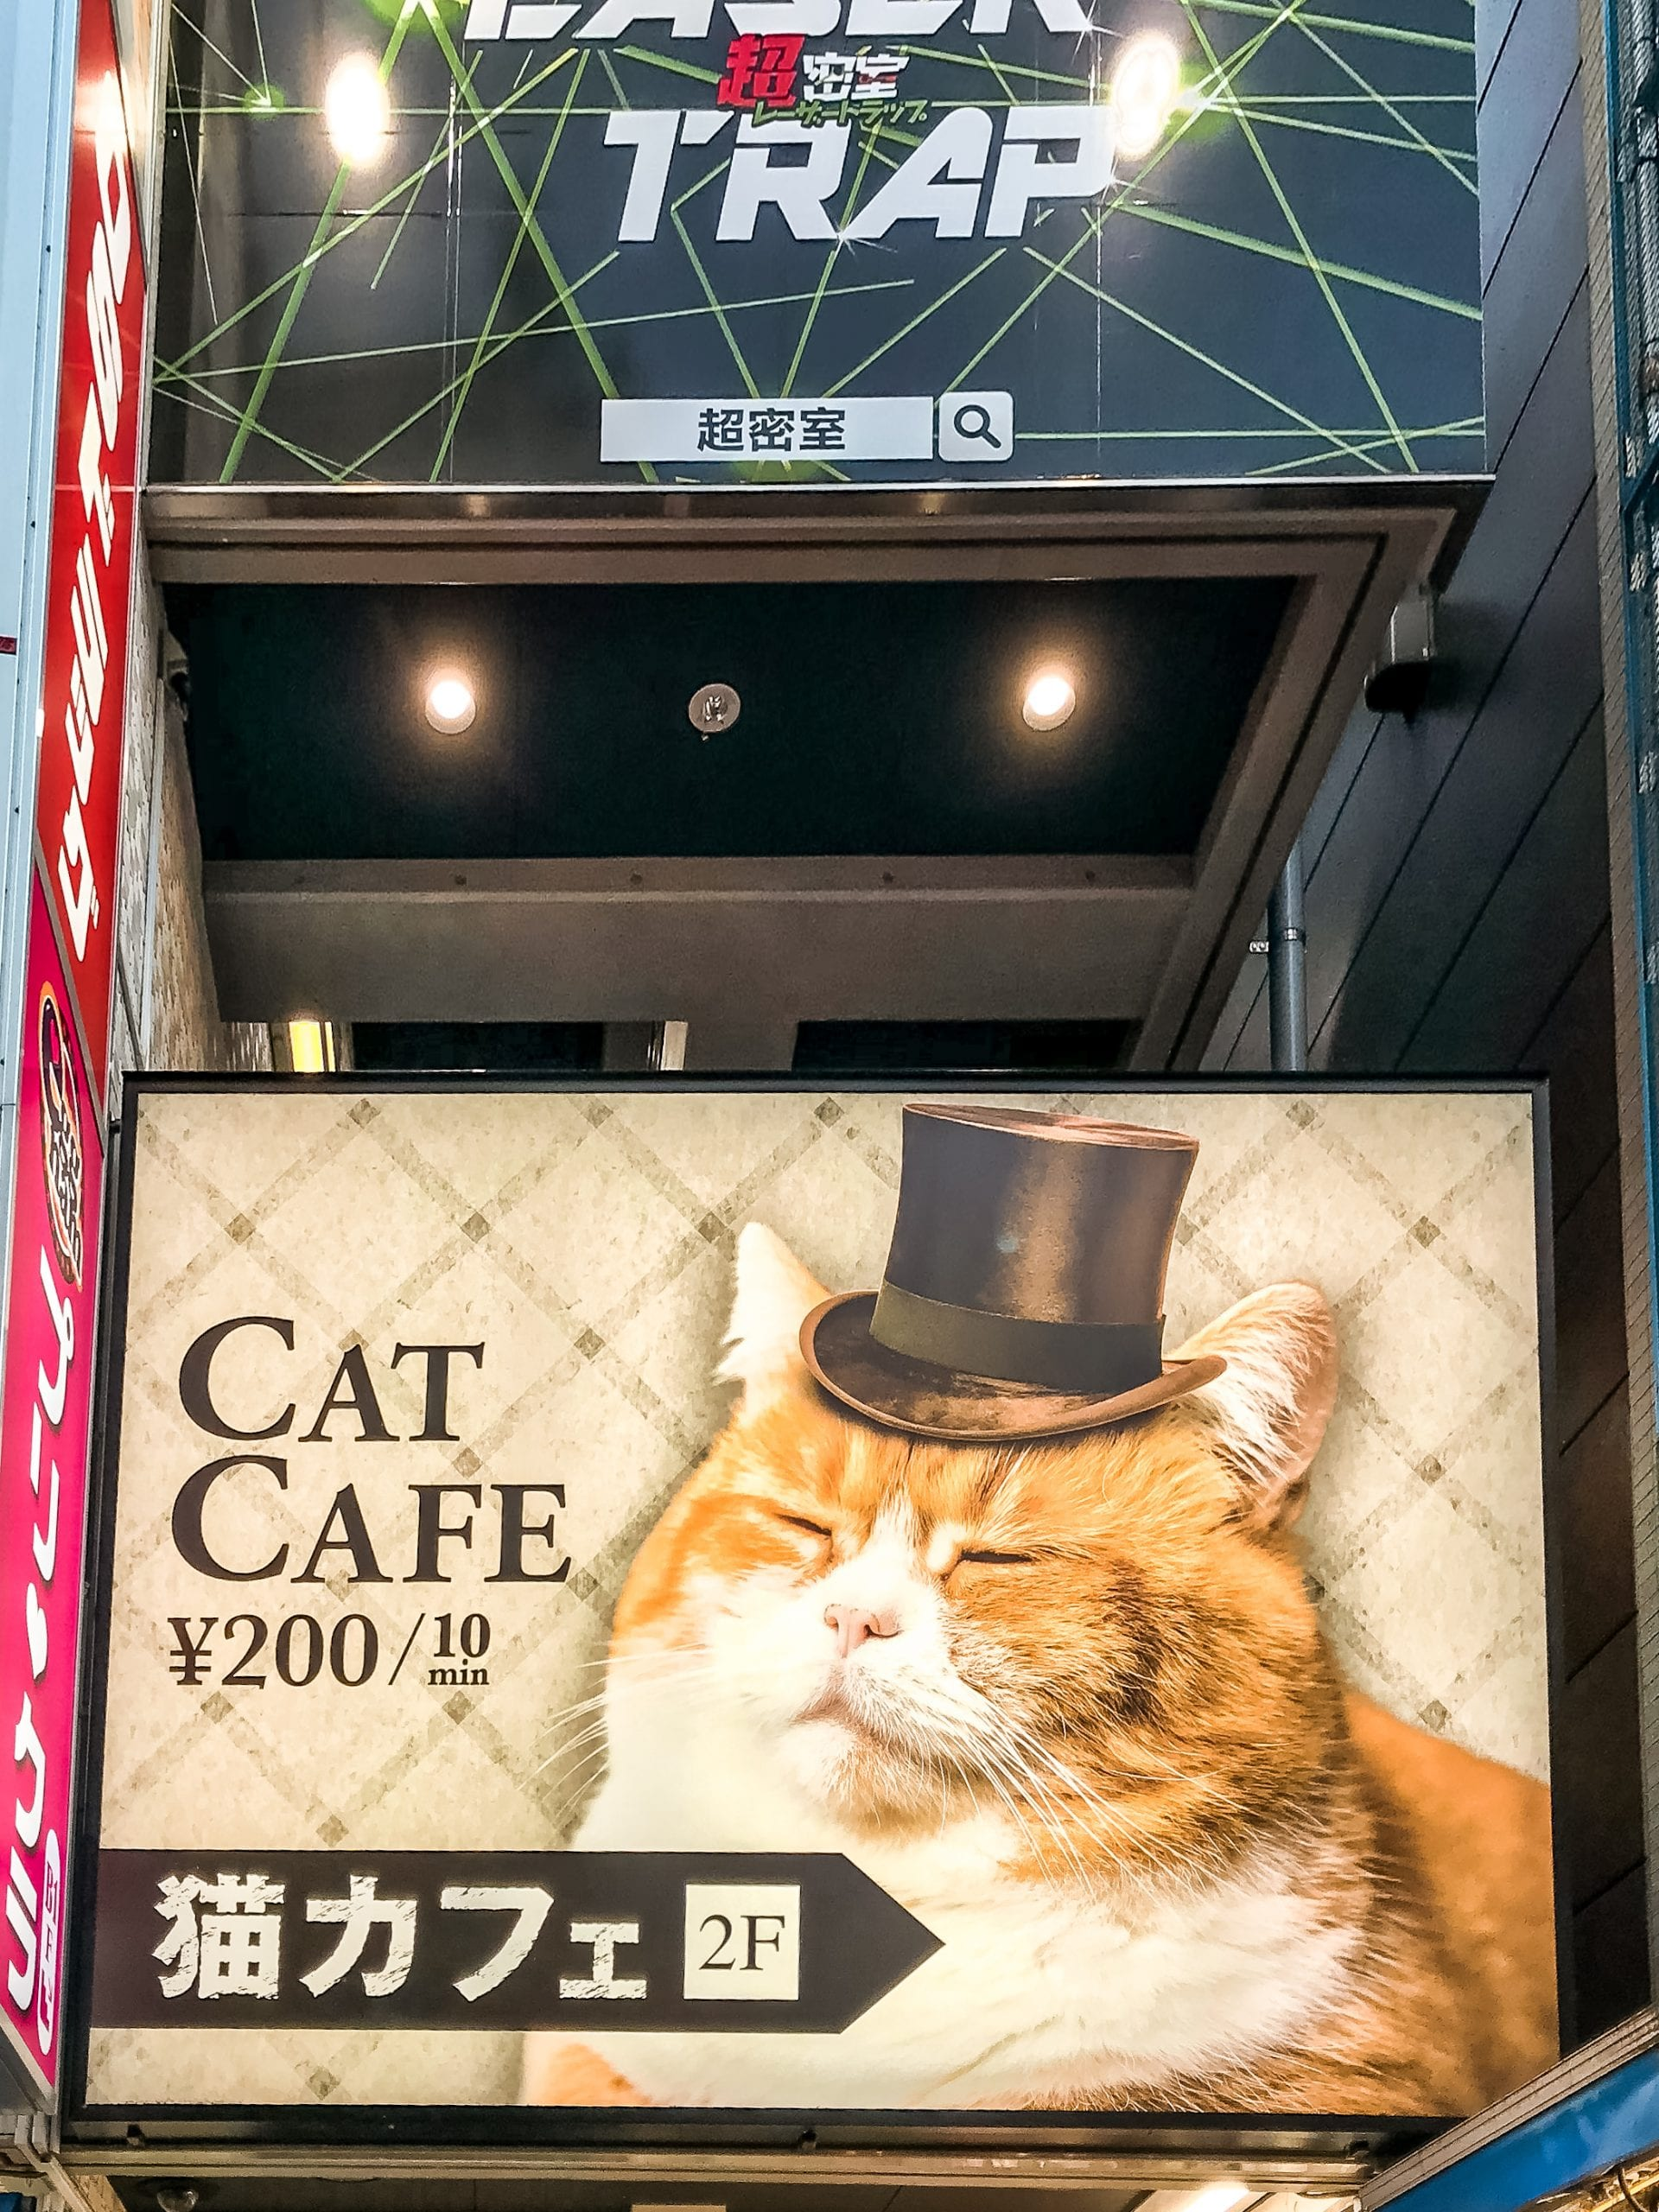 Themencafe Cat Cafe Japan Streichelcafé